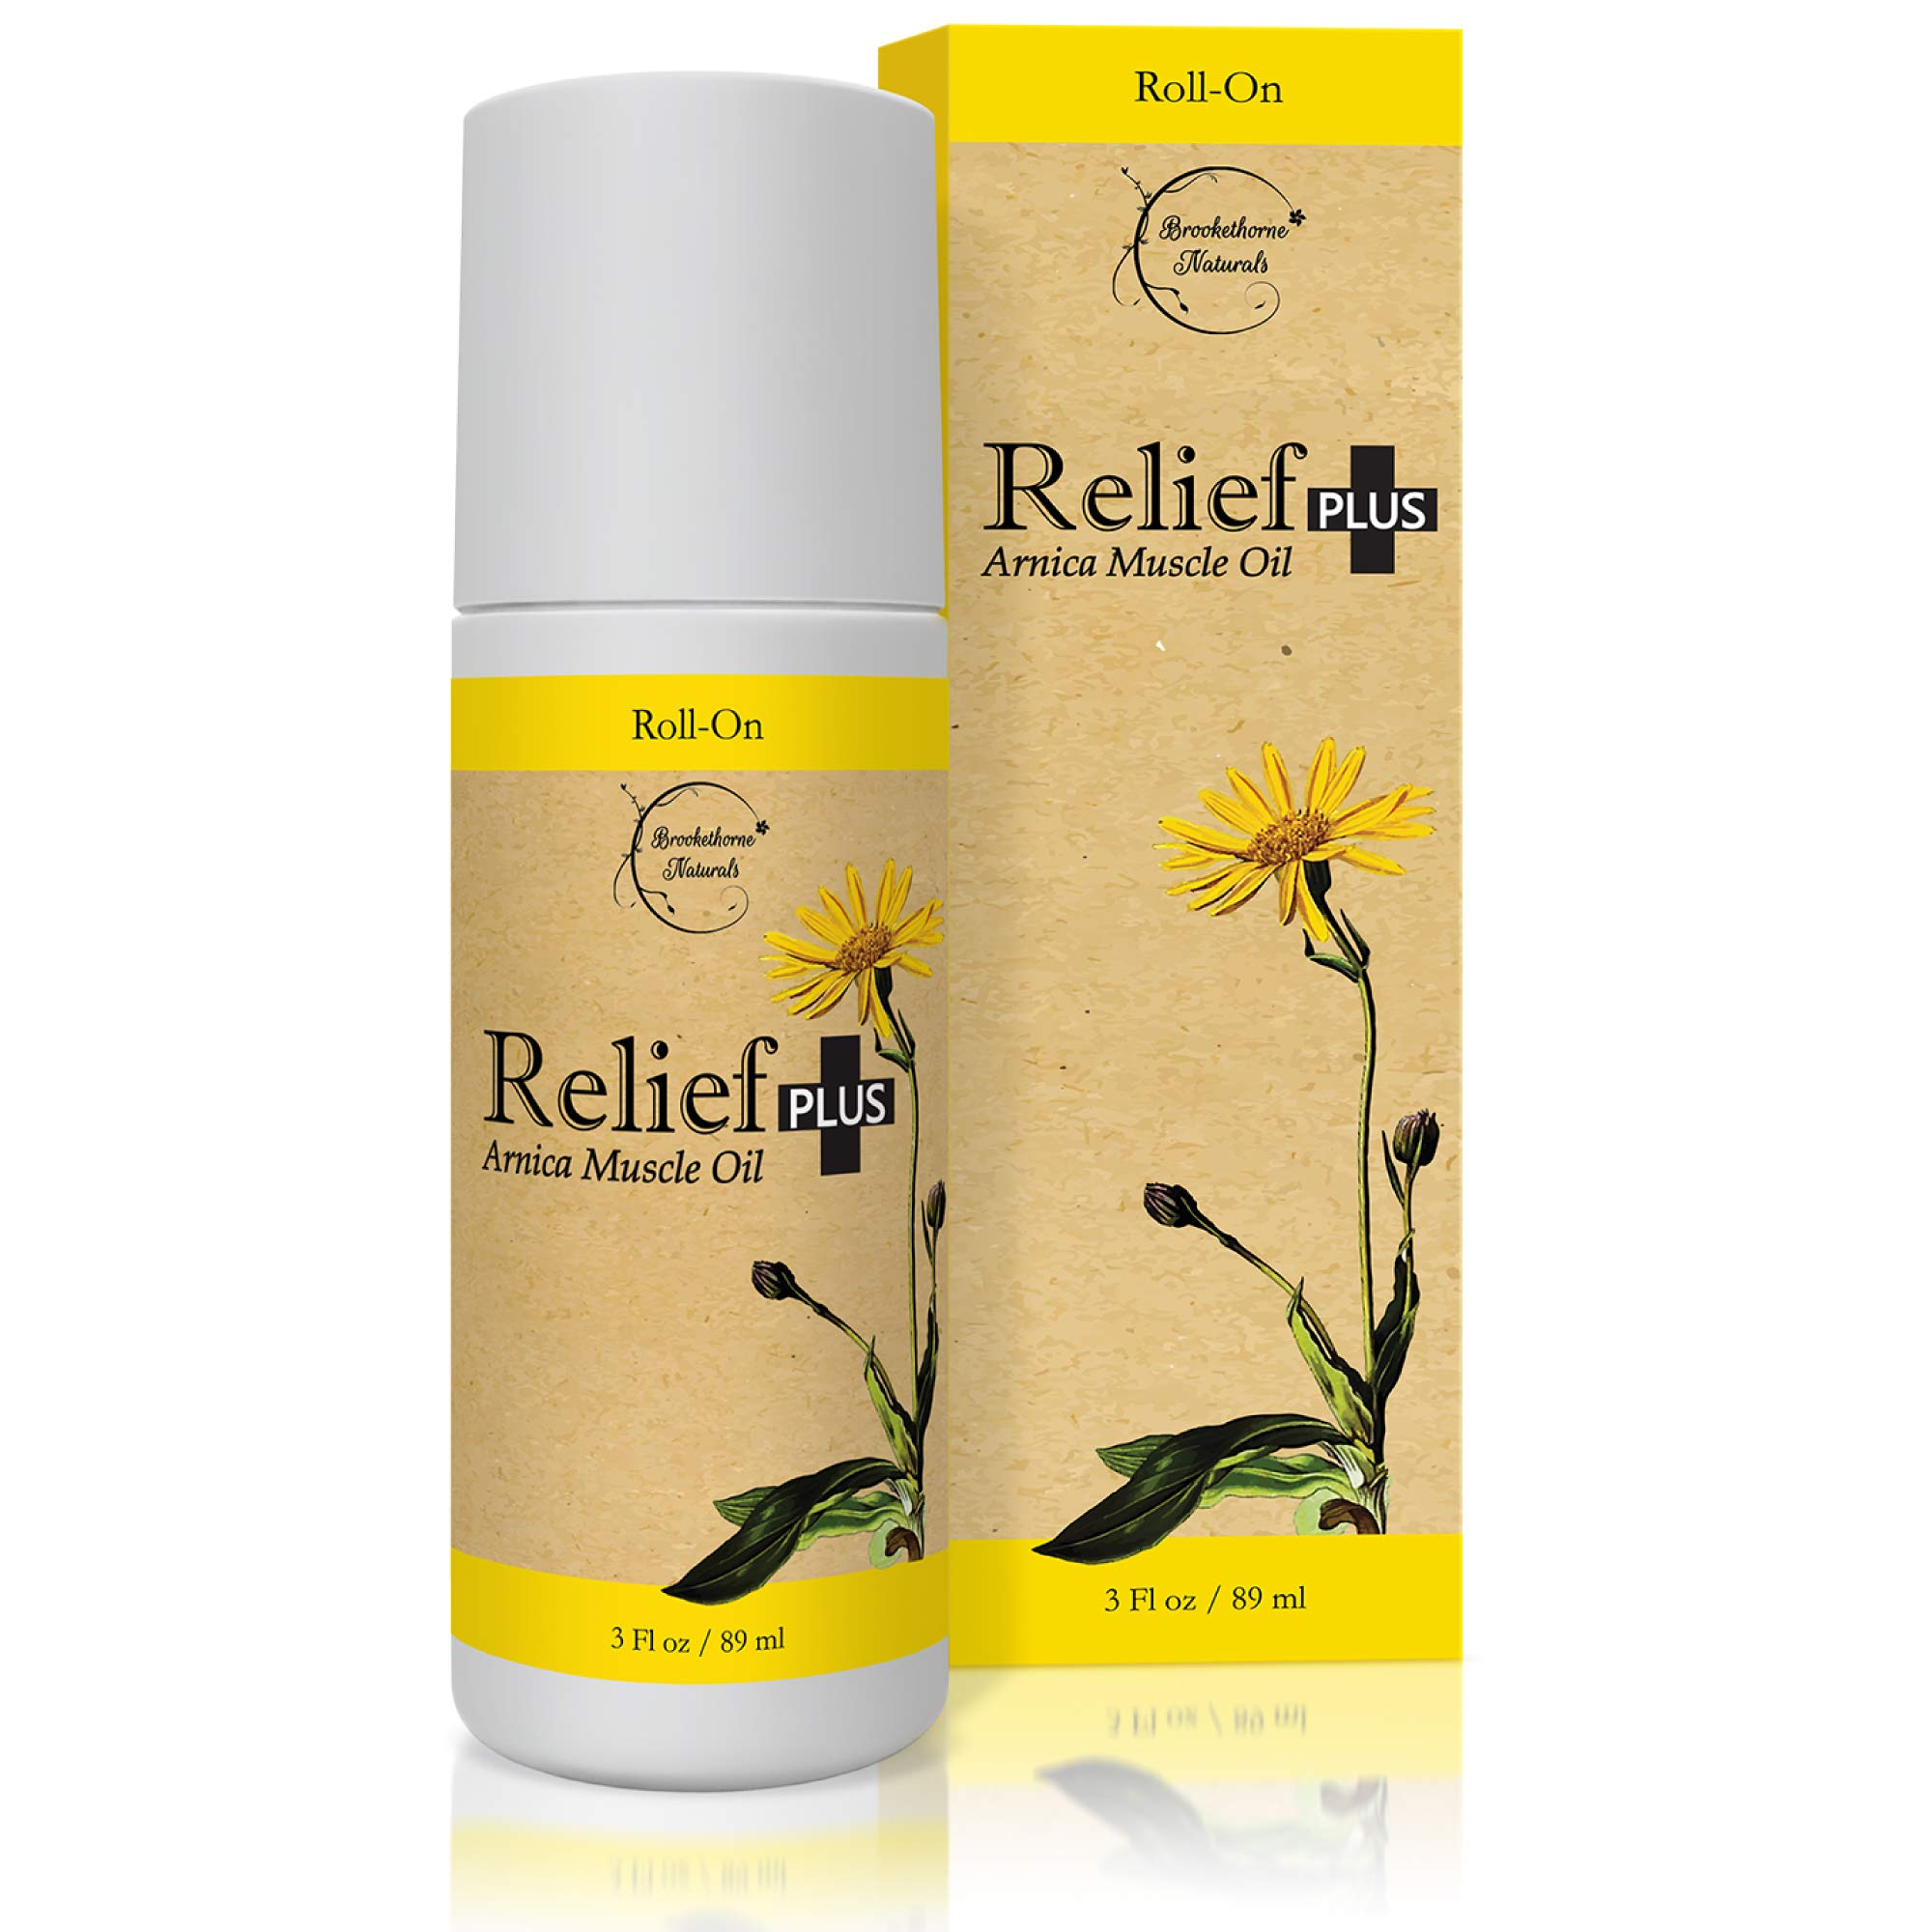 Relief Plus Arnica Muscle Oil - Extra Strength Roll On - Cypress, Eucalyptus & Helichrysum Essential Oils & Menthol. All Natural Remedy for Sore Muscles, Aching Joints by Brookethorne Naturals by Brookethorne Naturals